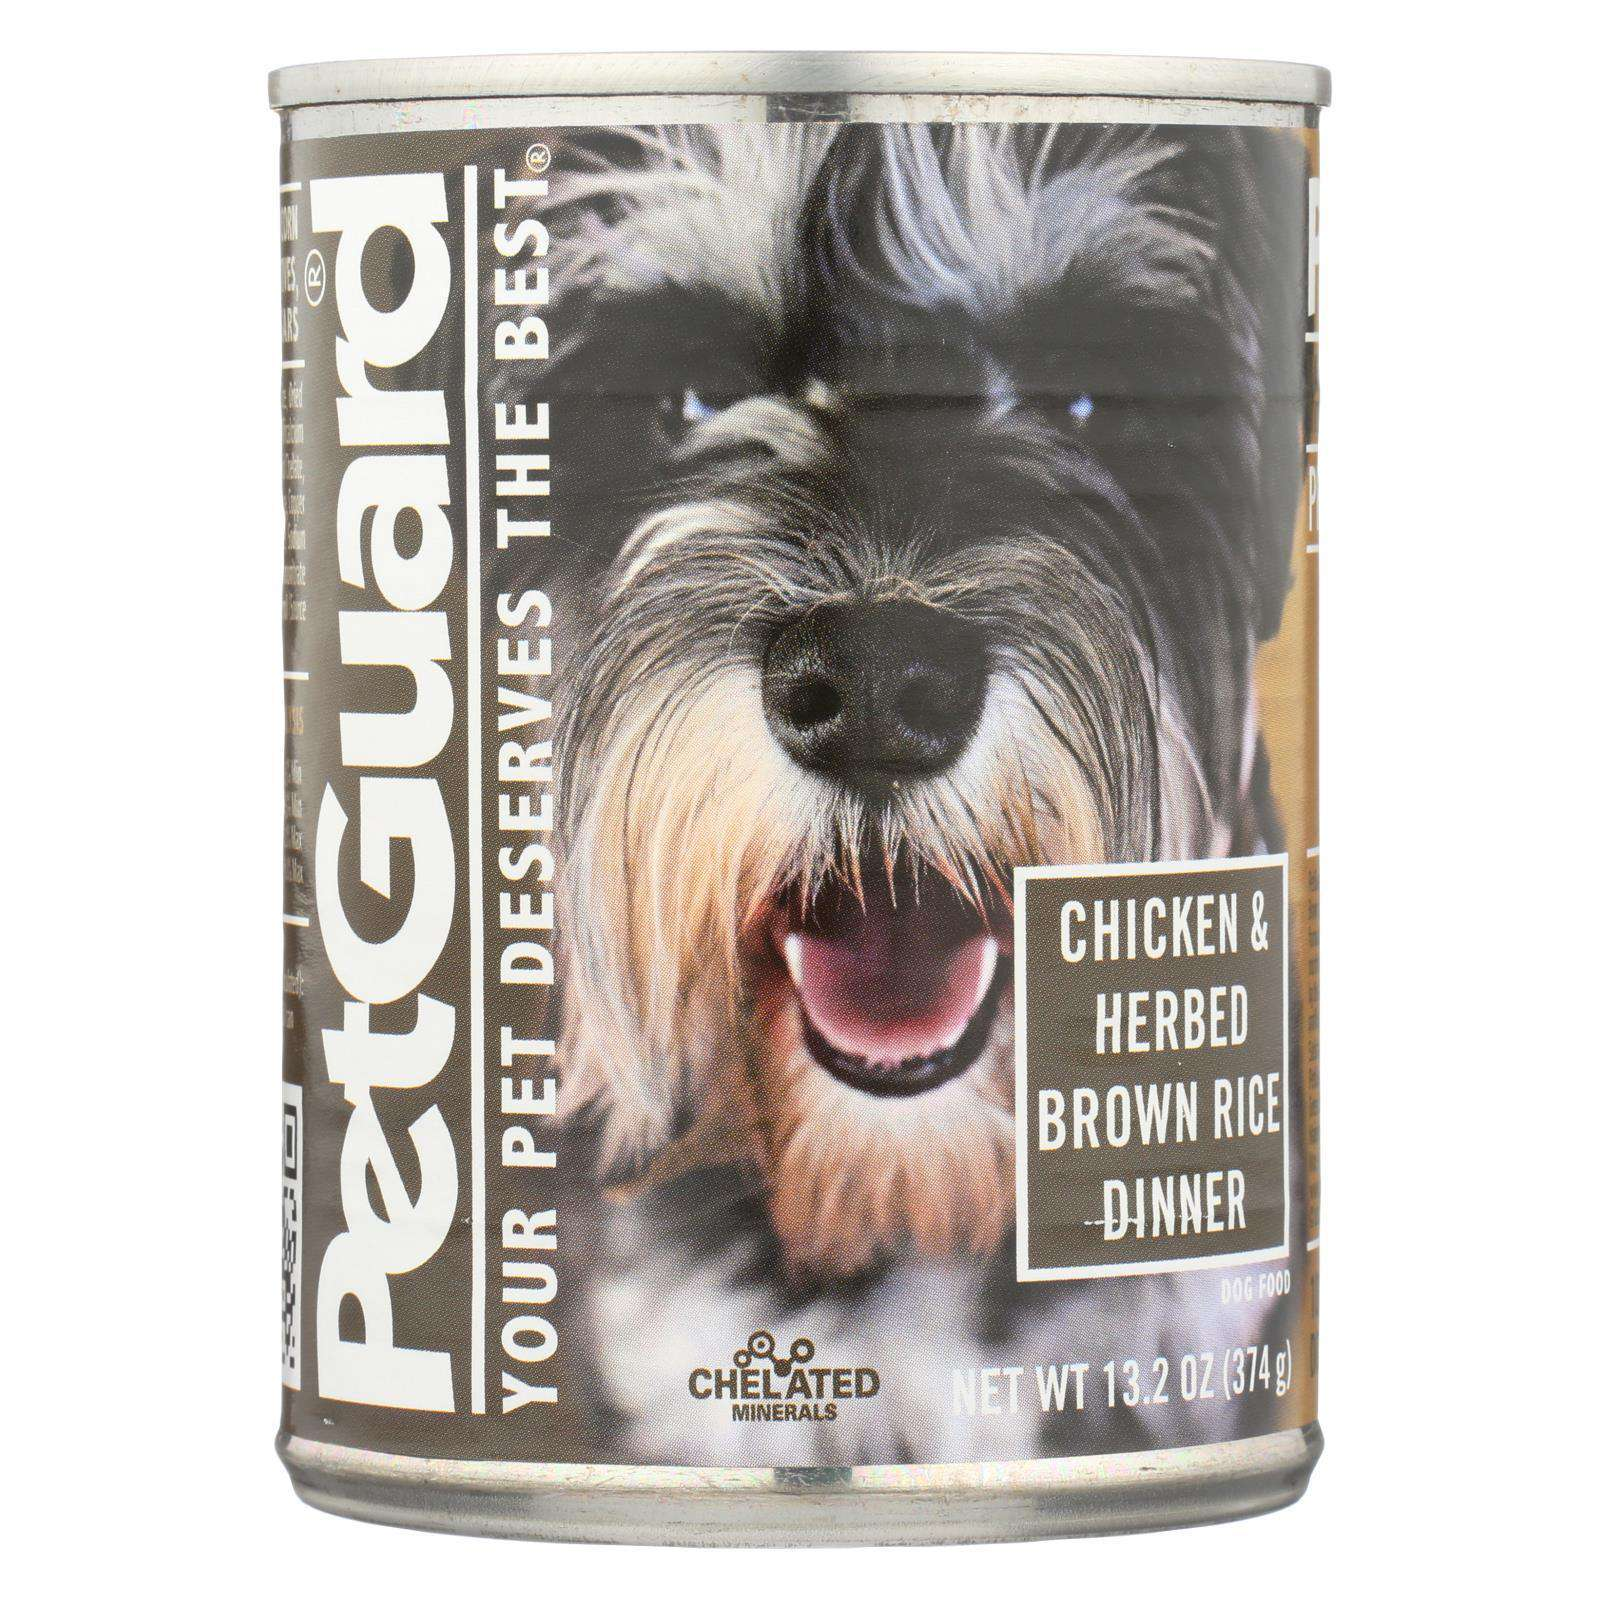 Petguard Canned Dog Foods - Chicken And Herbed Brown Rice - Case Of 12 - 13.2 Oz.-Petguard-DirtyFurClothing